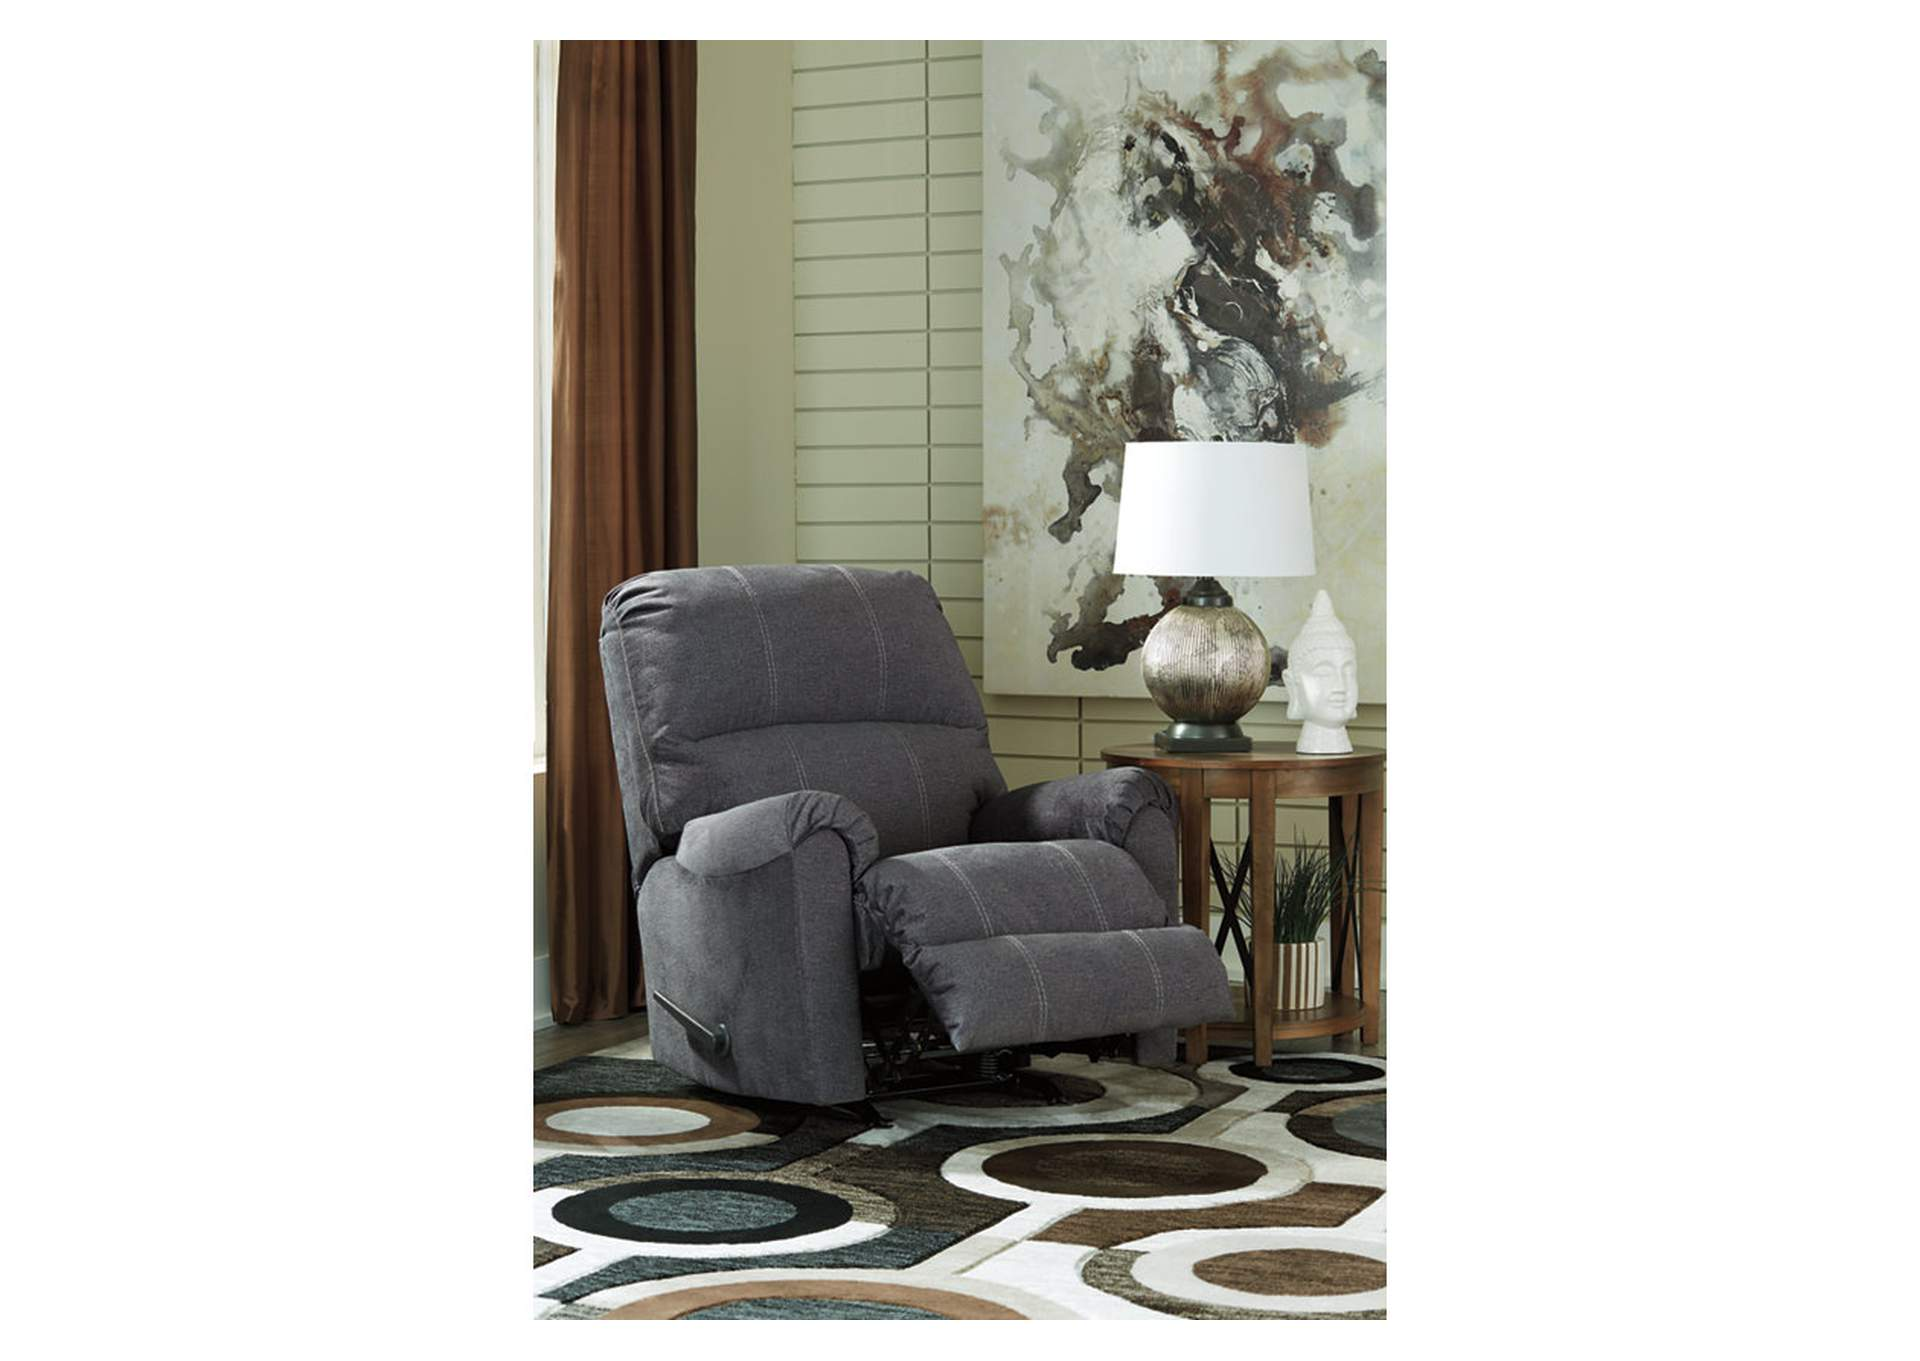 Urbino Charcoal Rocker Recliner,Signature Design By Ashley